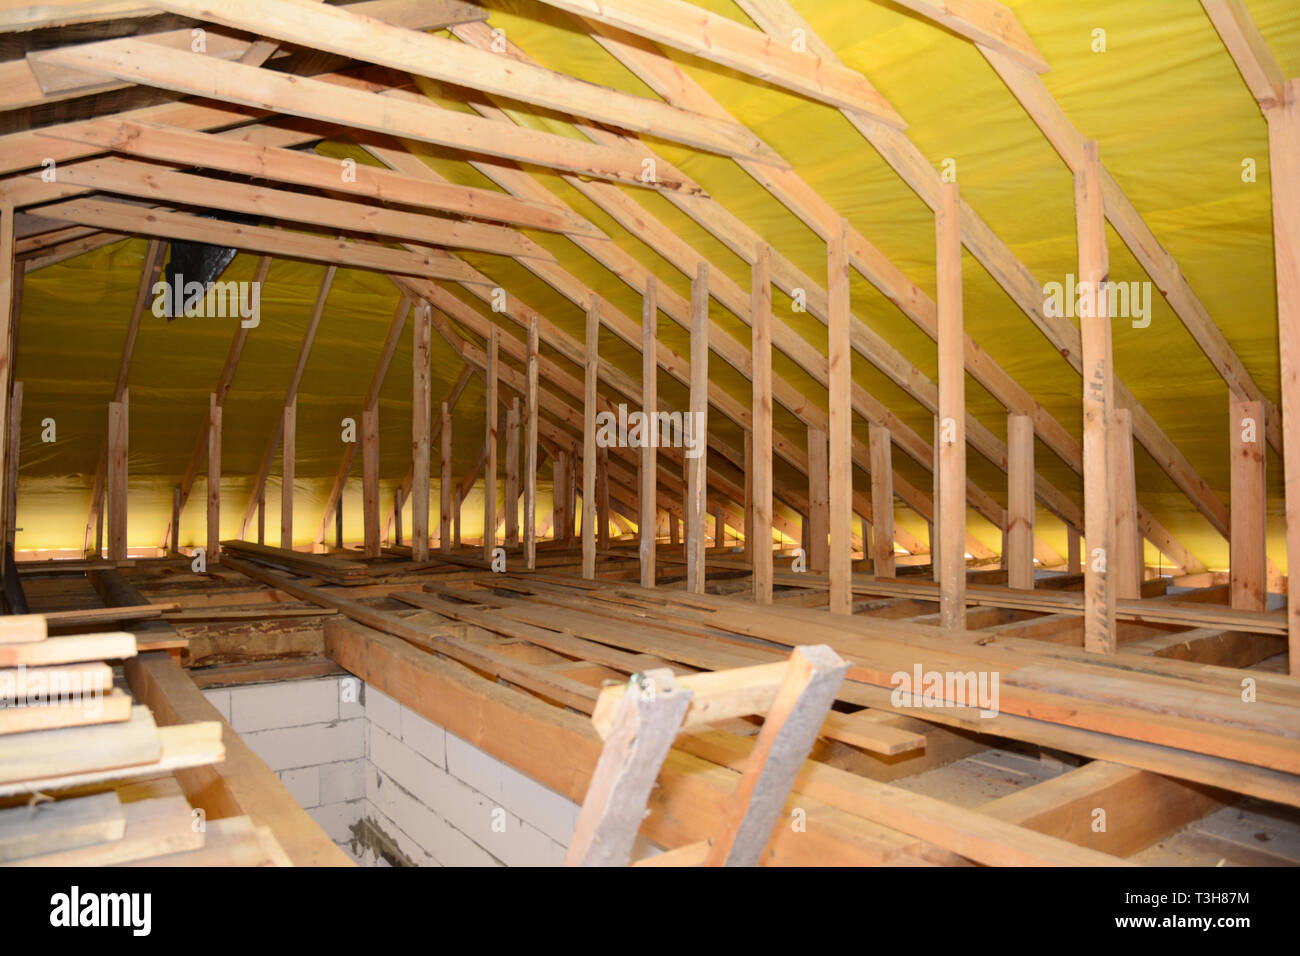 Roofing Construction Interior Wooden Roof Beams Wooden Frame